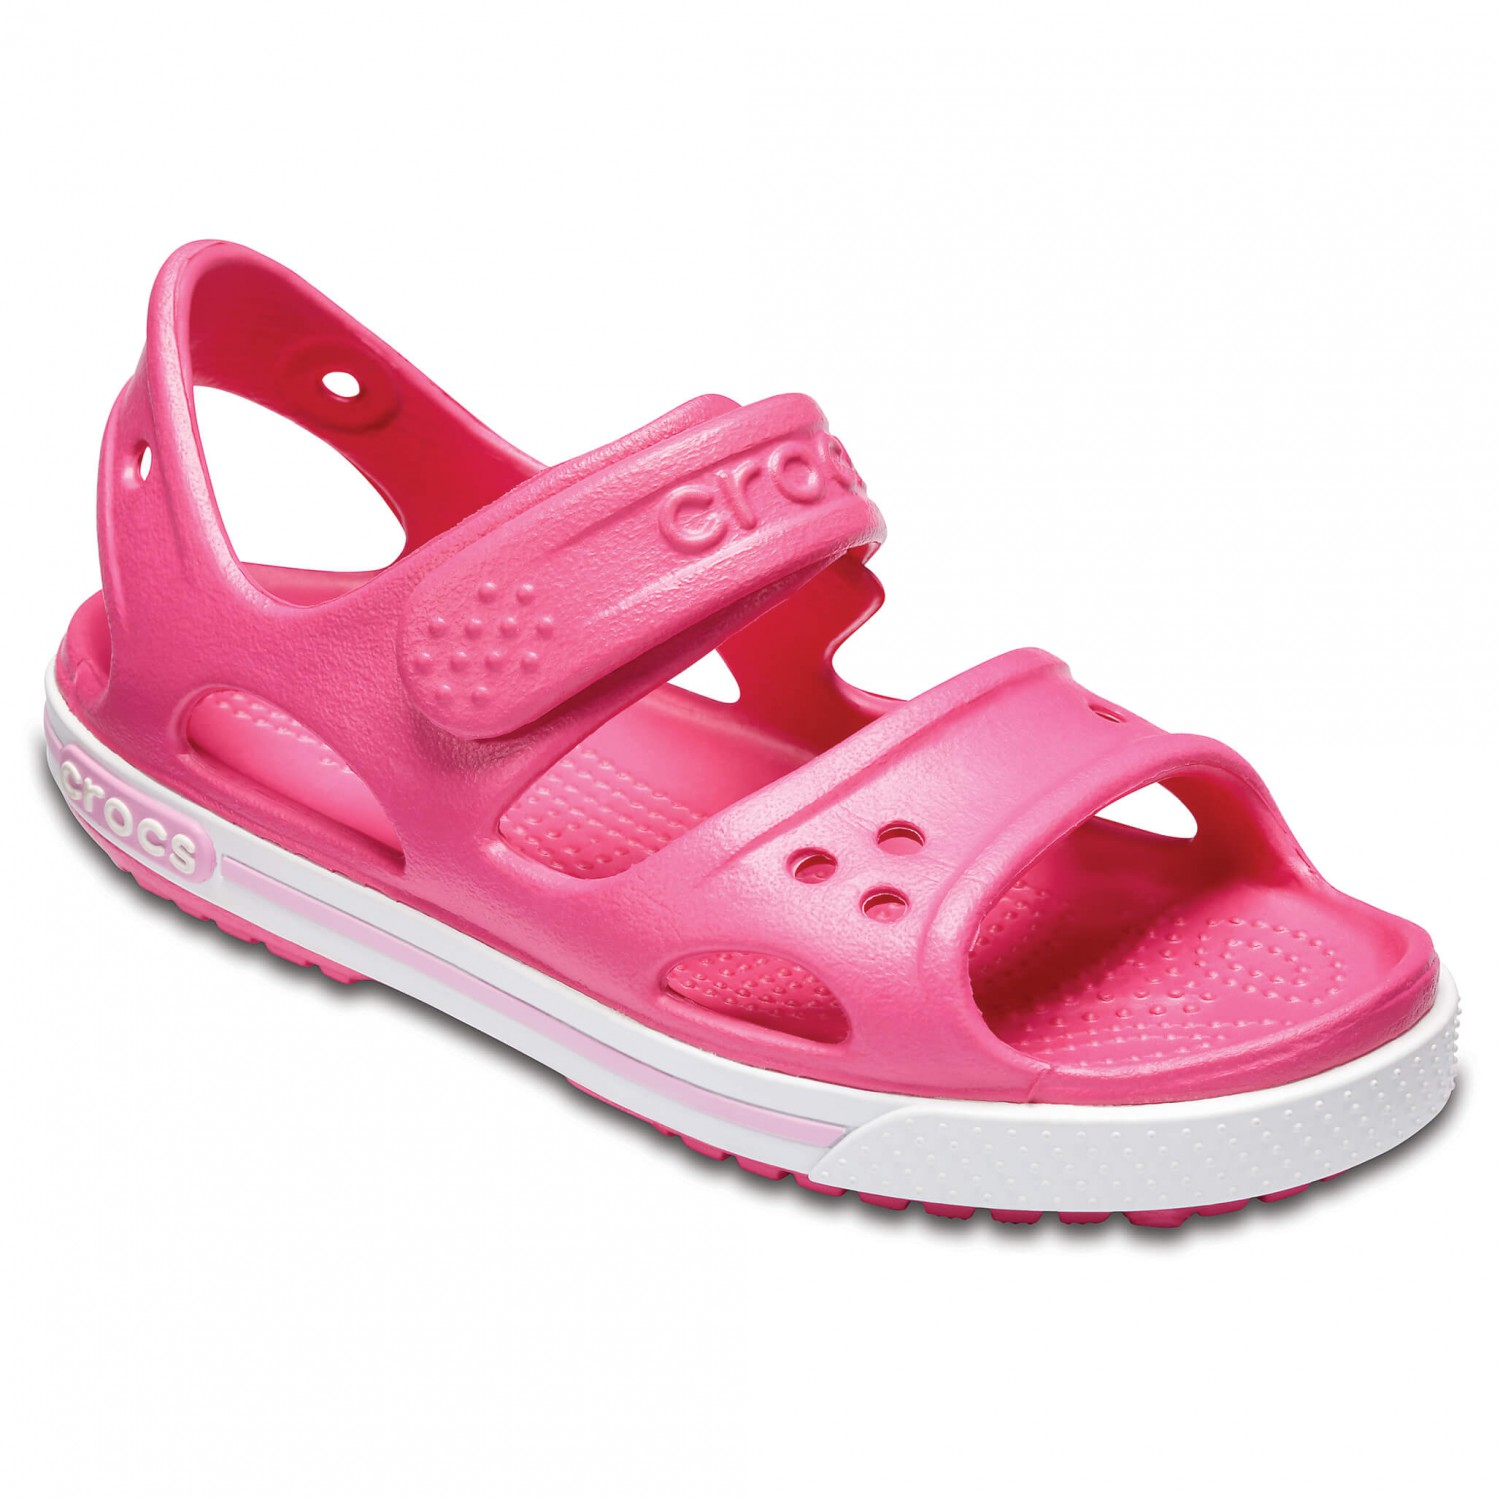 low priced 4f4cc 1367f Crocs - Kid's Crocband II Sandal PS - Sandals - Paradise Pink / Carnation |  C12 (US)